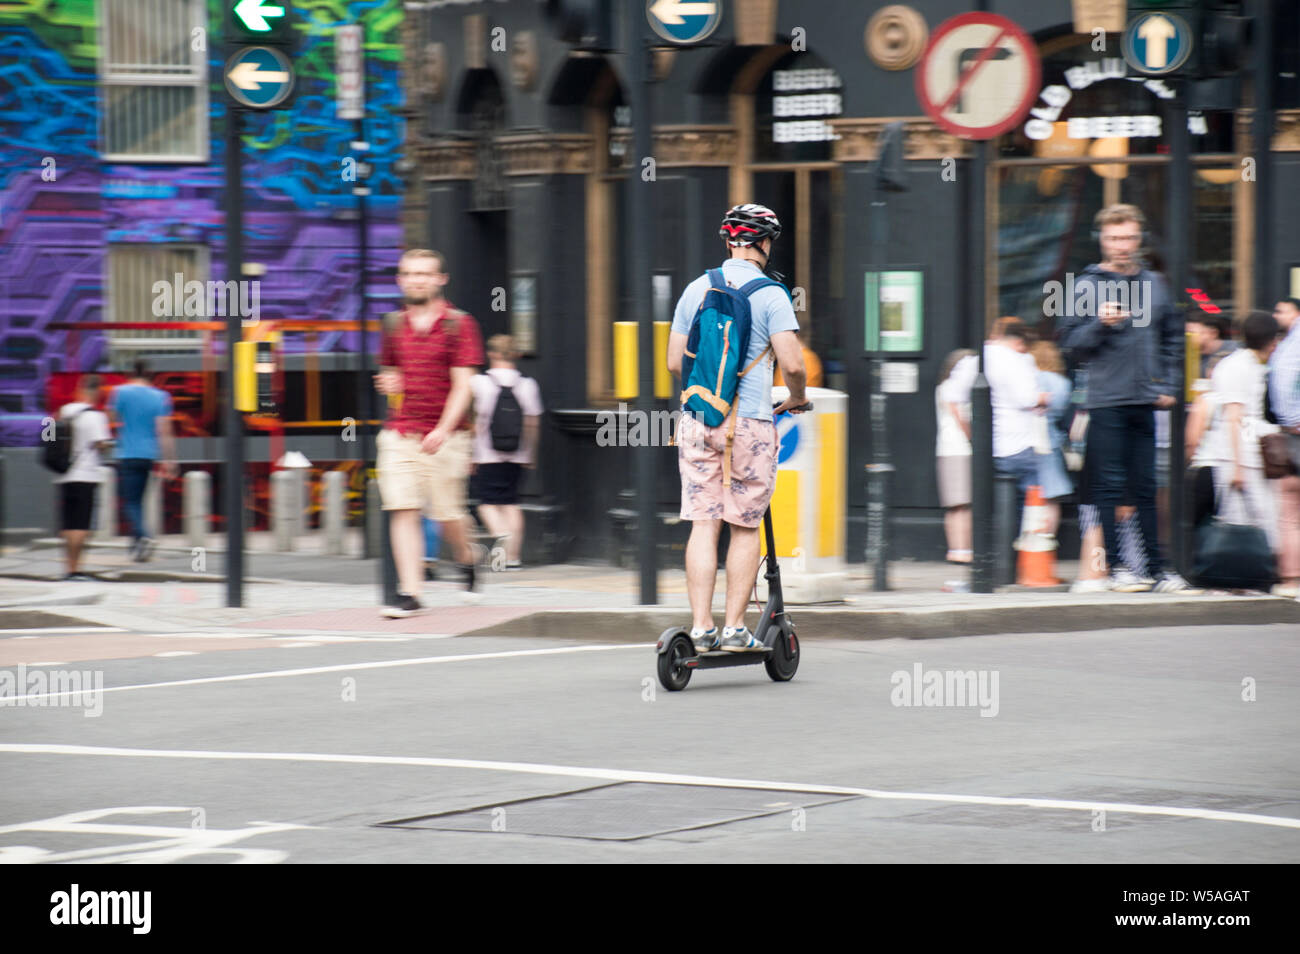 man-riding-on-electric-scooter-in-london